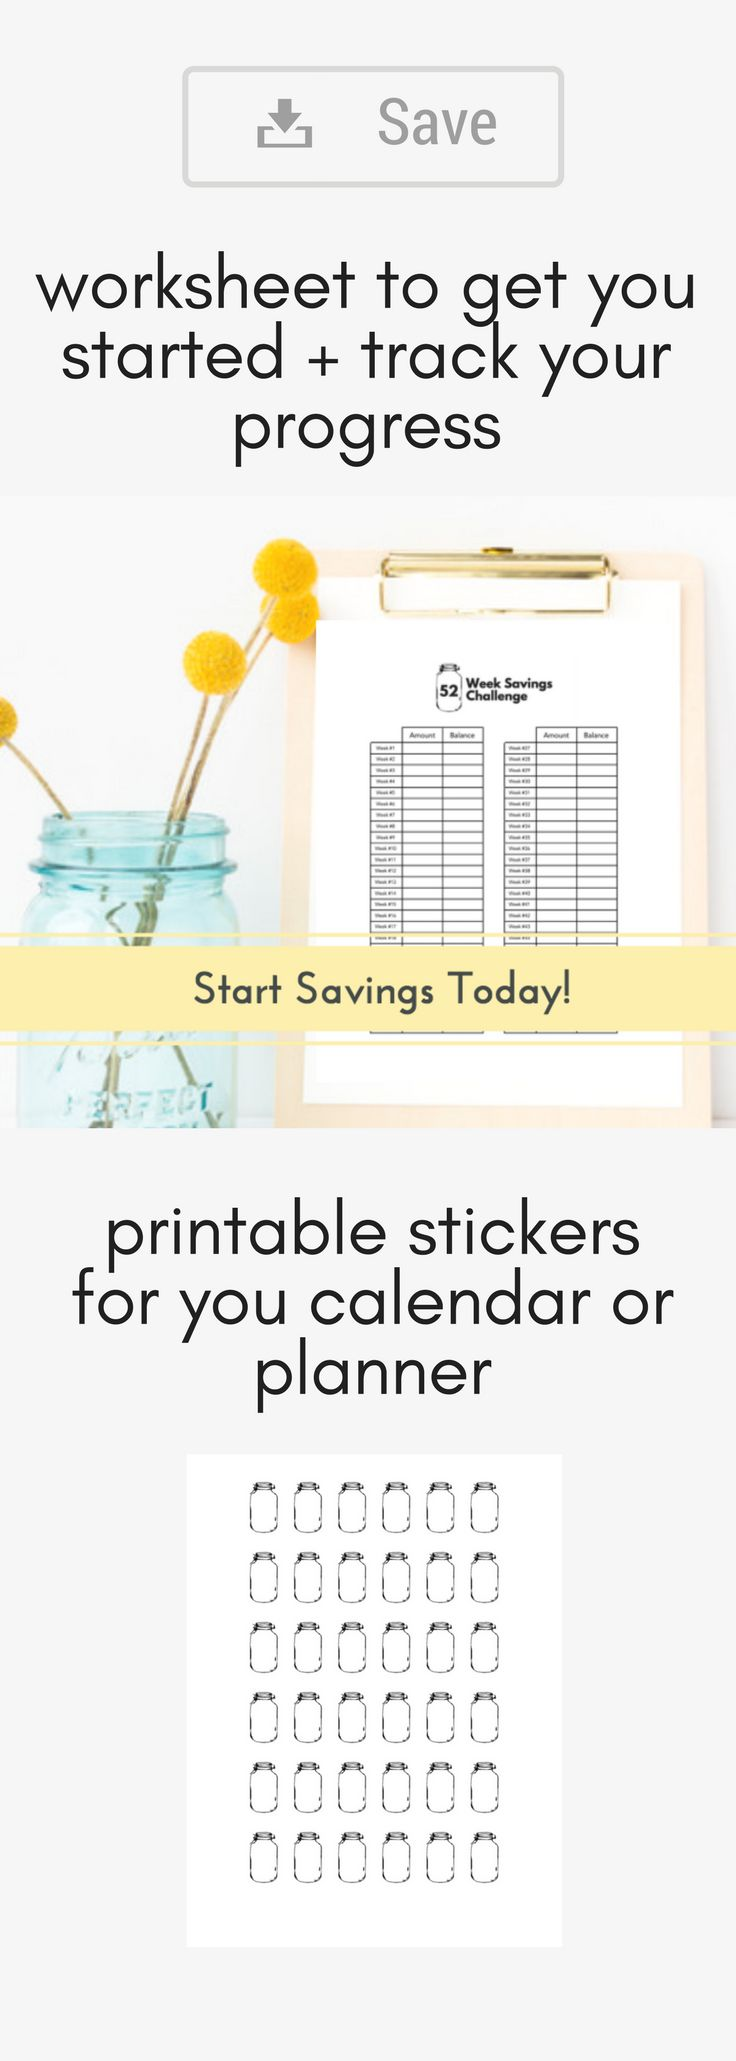 Post on your fridge, in your planner or family binder. Print as many as you'd like. Get the kids involved and have them cutting up the mason jar stickers to add to the family calendar to track your progress!! Whether you have a big savings goal, upcoming family vacation, or just want a fun way to track your progress this printable is just what you need. Or if you are following Dave Ramsey's baby steps, this would be a great way to incorporate the emergency fund goal!